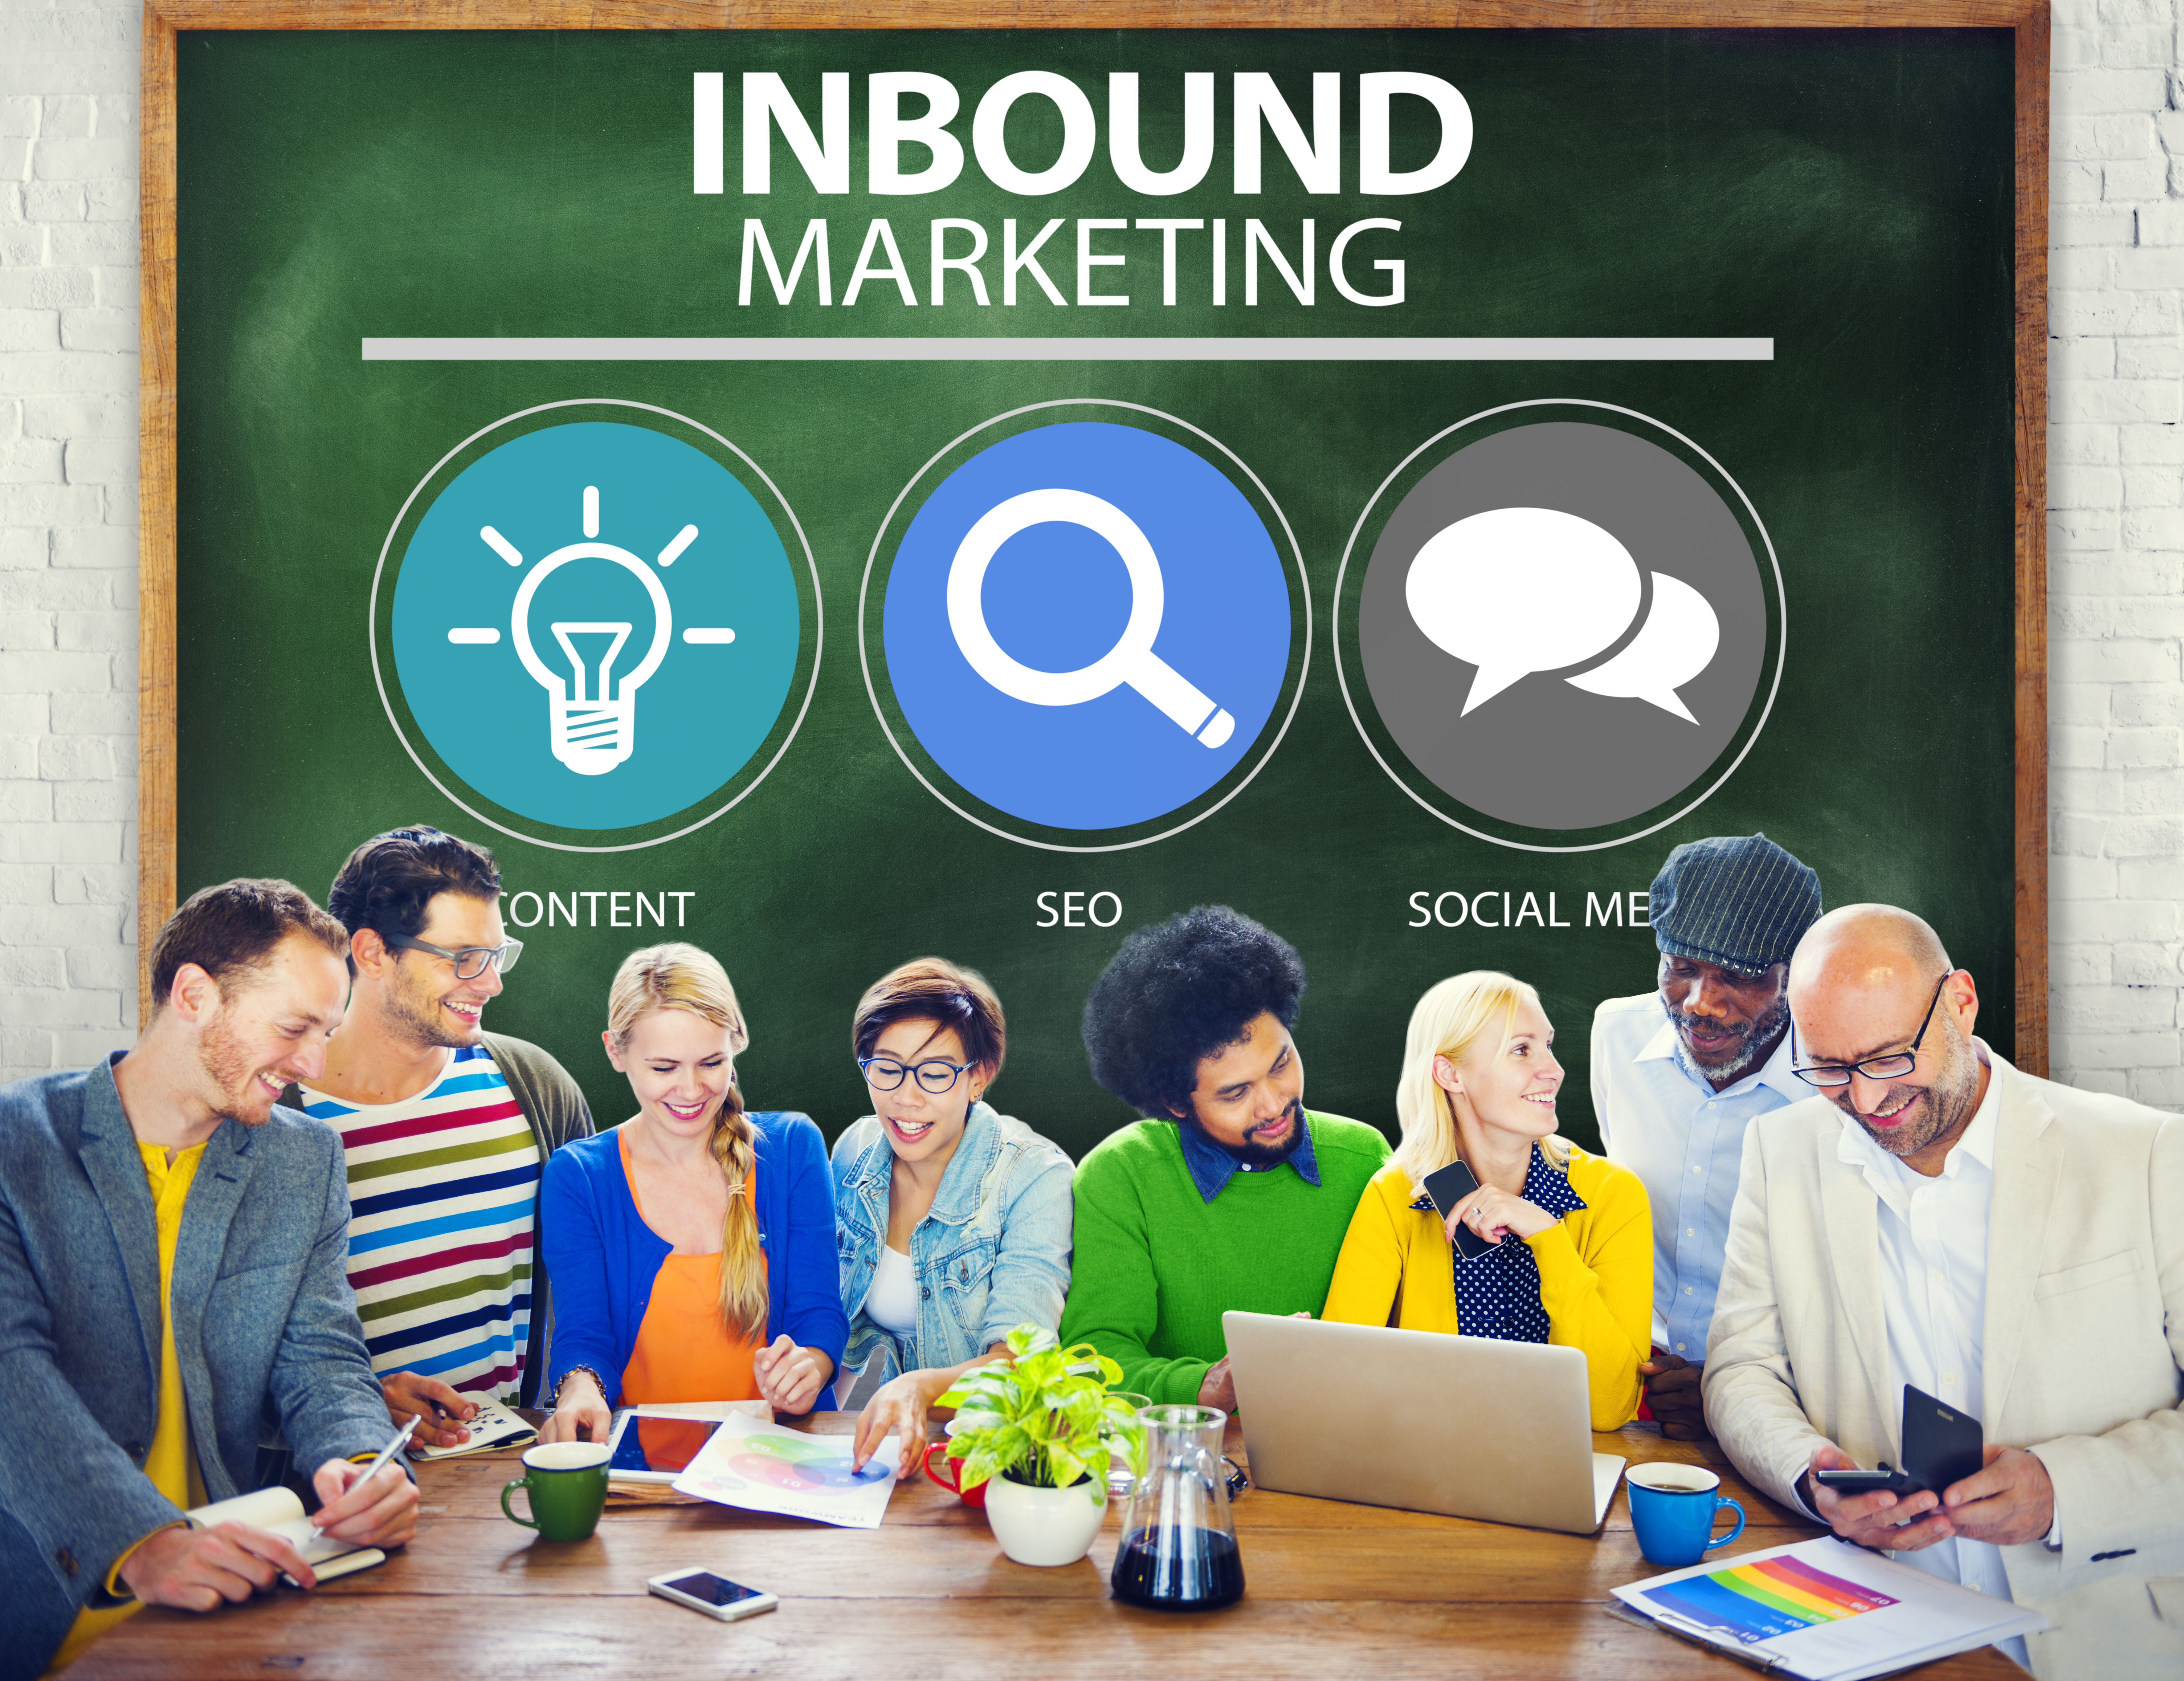 Inbound Marketing for education institute